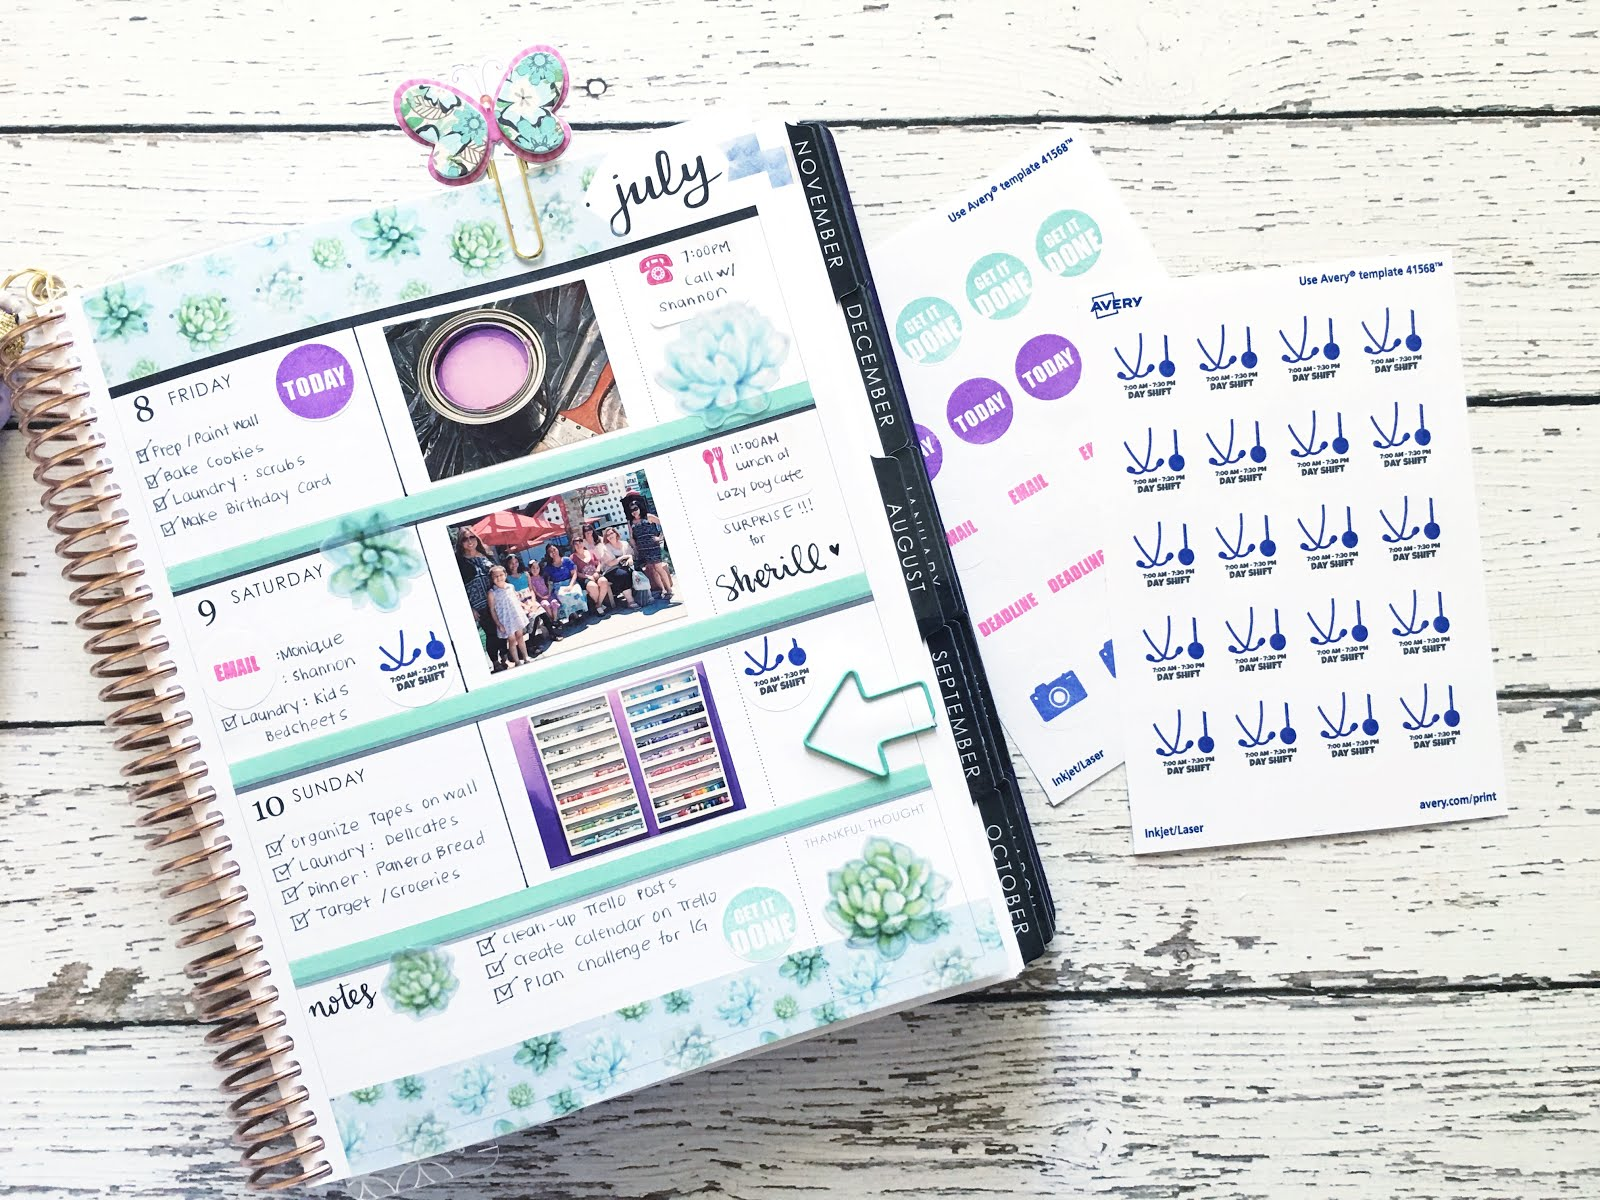 i hope this has motivated you to use avery products with your planner check back here again soon for more great ideas make sure to follow avery on